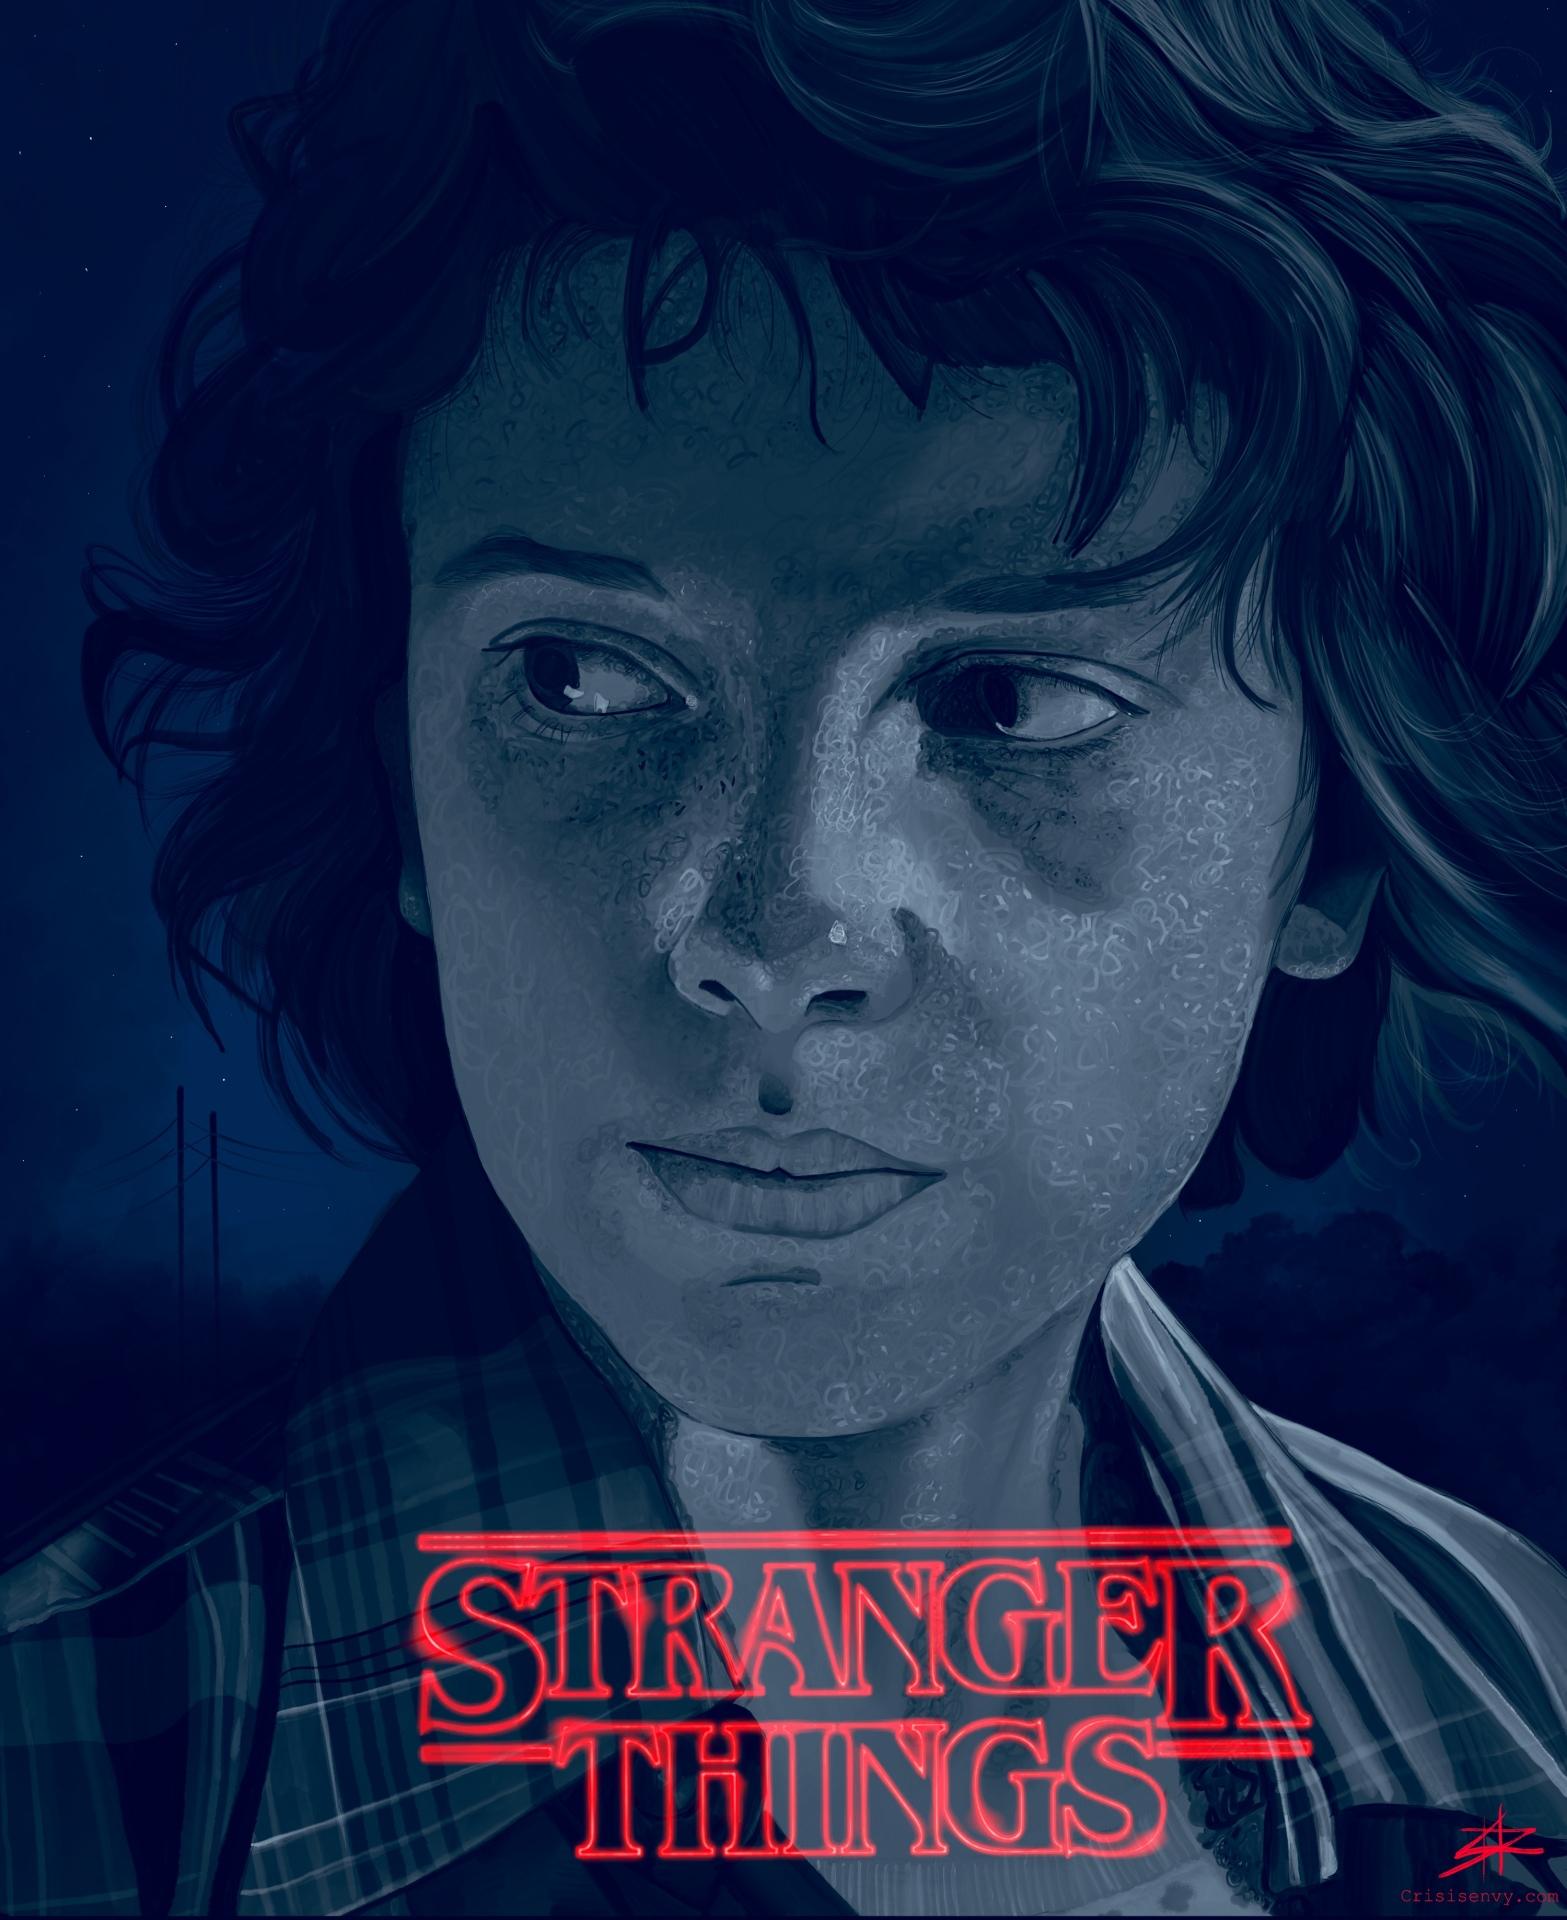 Eleven of Stranger Things